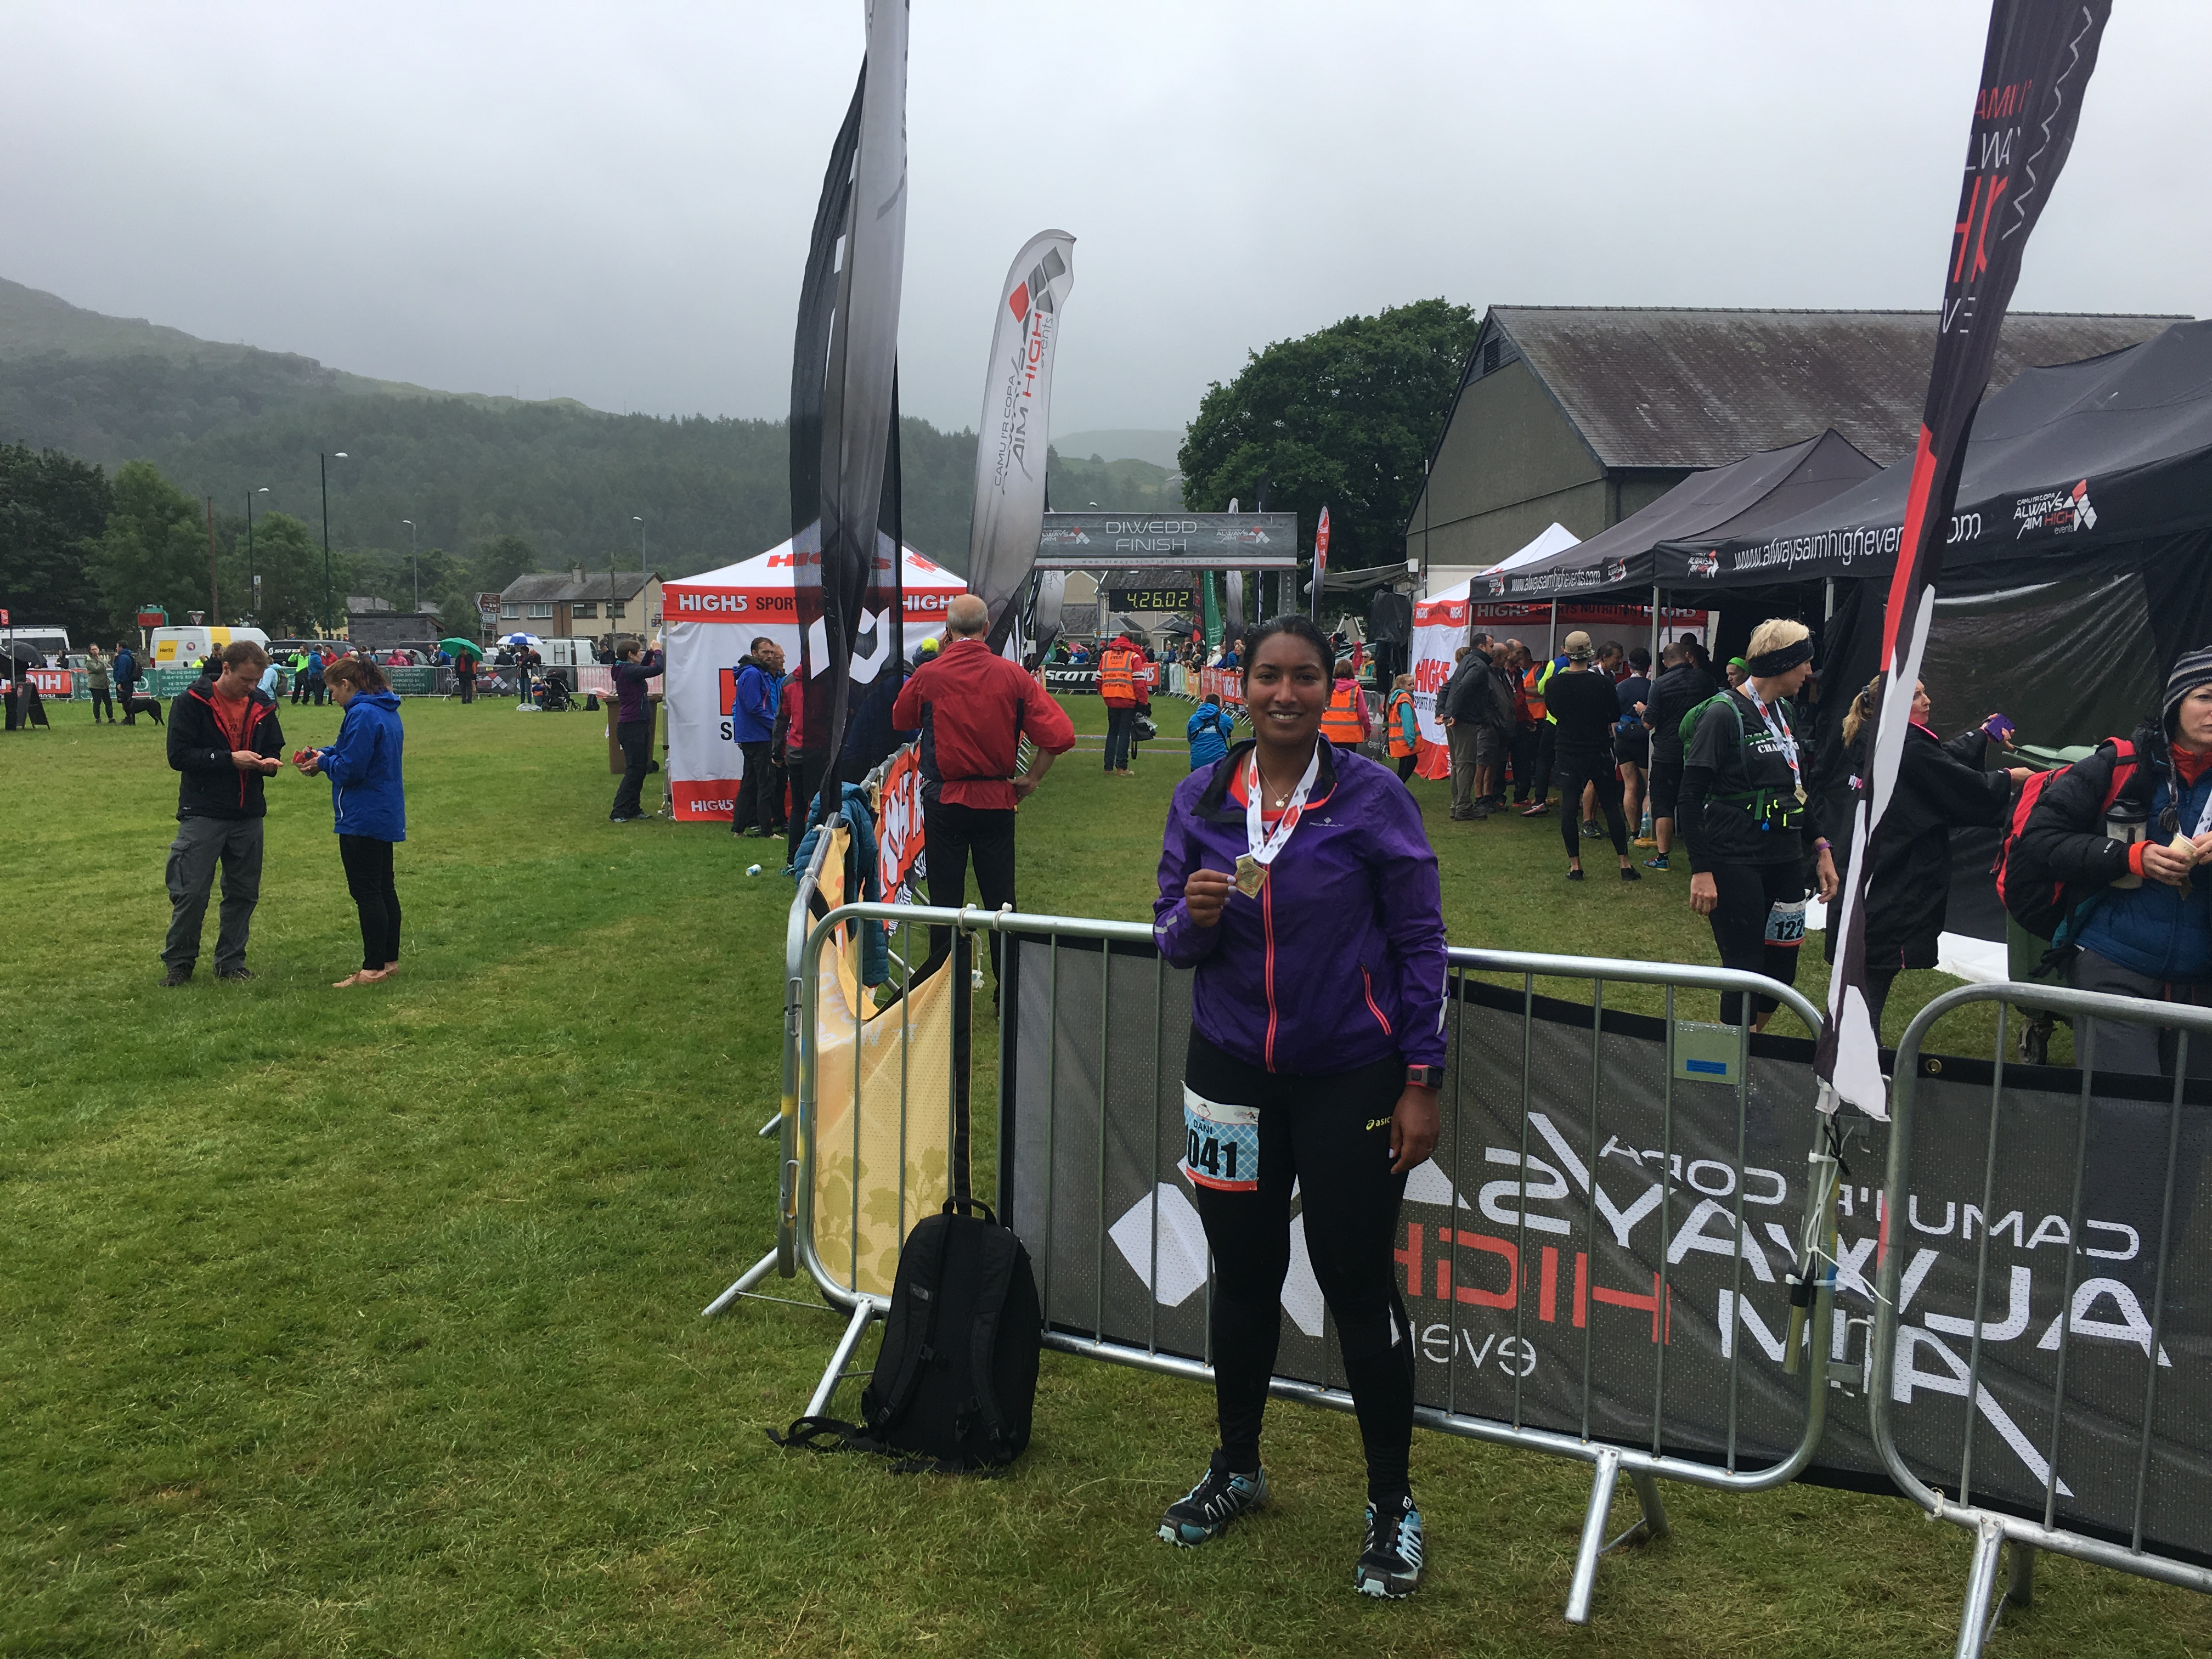 The Scott Snowdonia Trail Half Marathon 2016